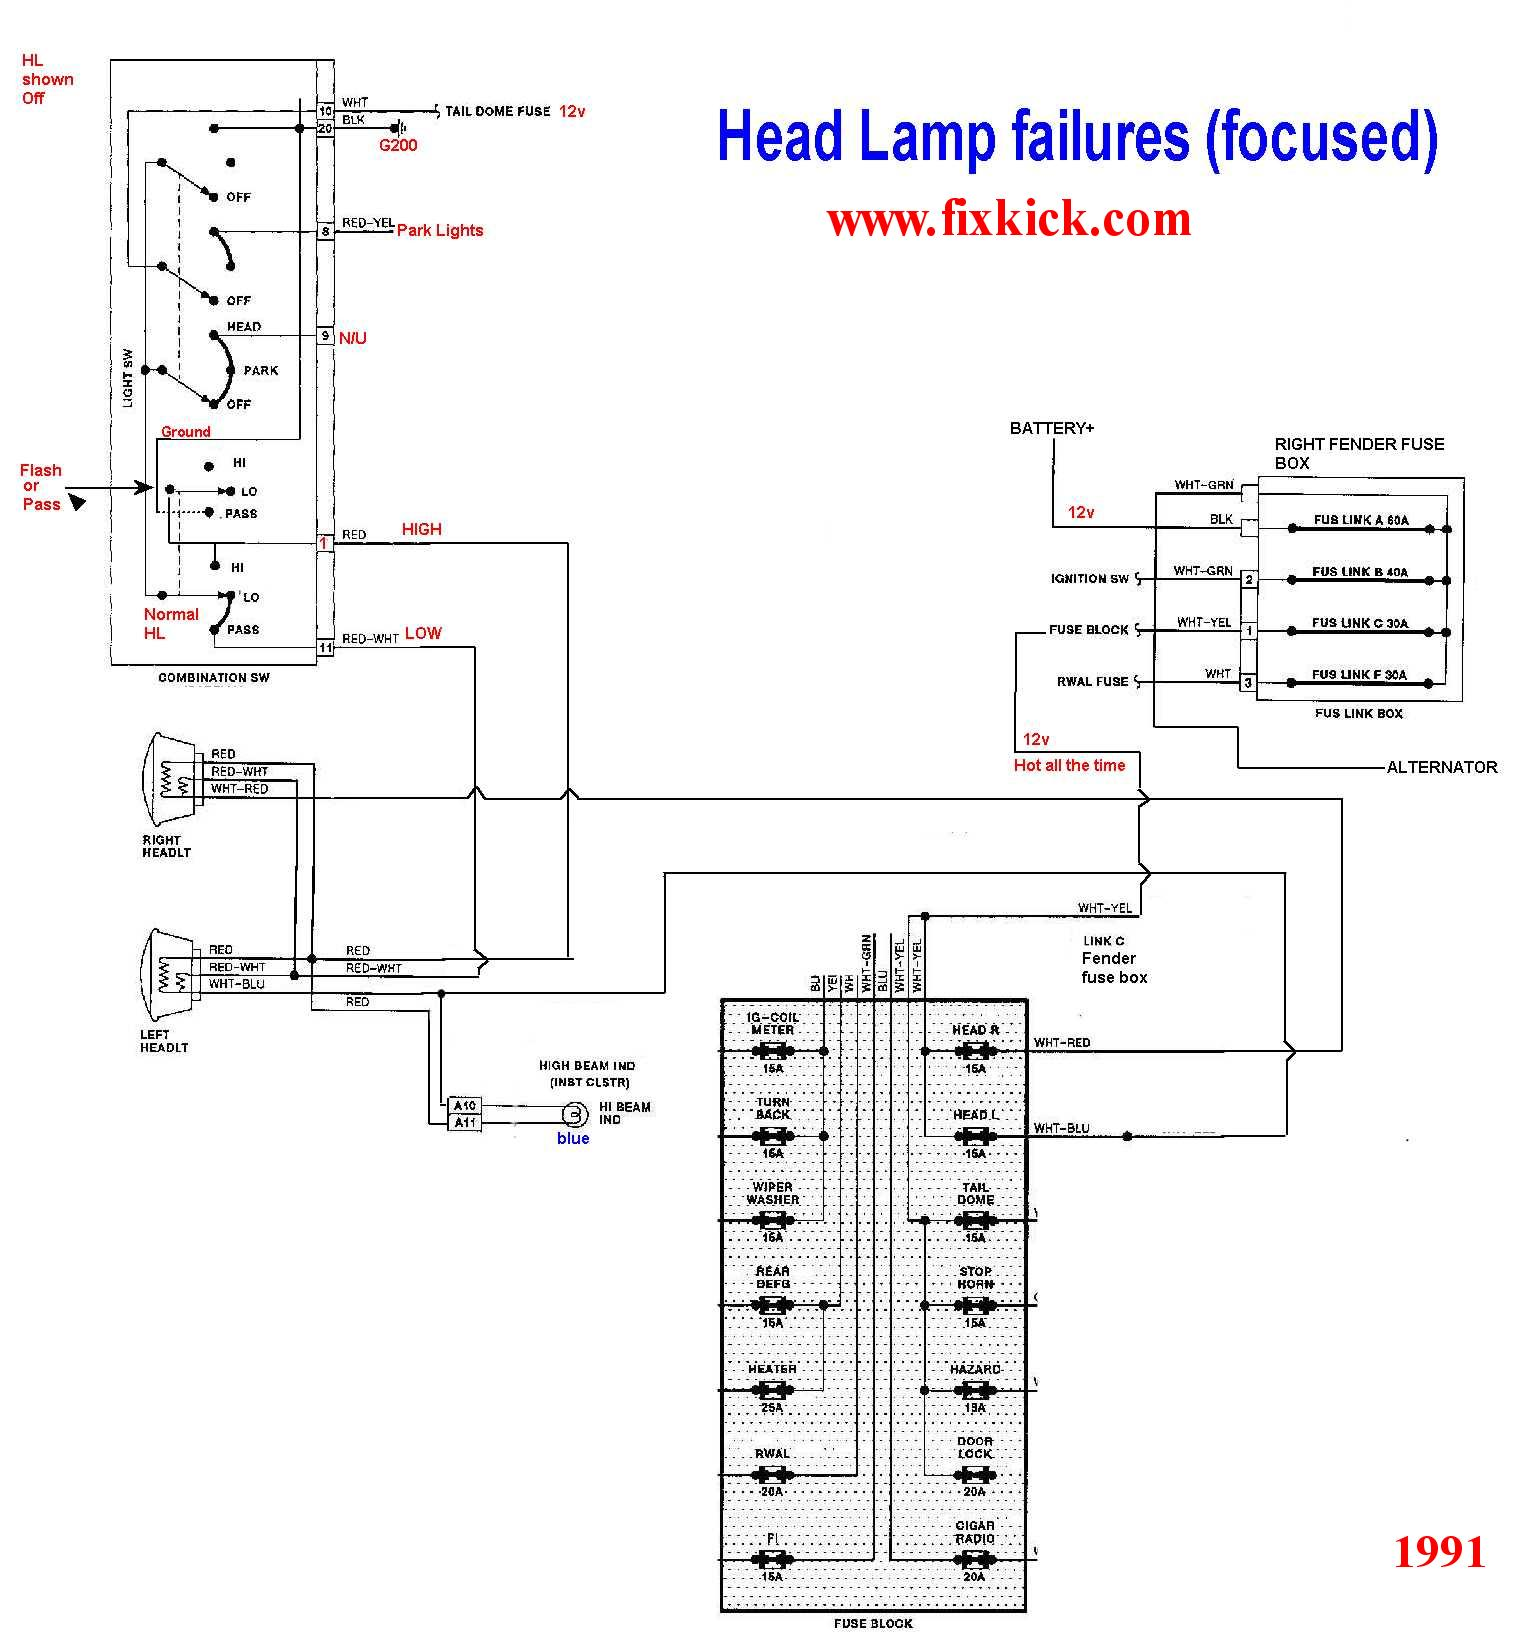 [DIAGRAM_3NM]  DIAGRAM] Chevy Metro Wiring Diagram FULL Version HD Quality Wiring Diagram  - LADDERDIAGRAM.NUITDEBOUTAIX.FR | 2000 Chevy Metro Fuse Box |  | ladderdiagram.nuitdeboutaix.fr